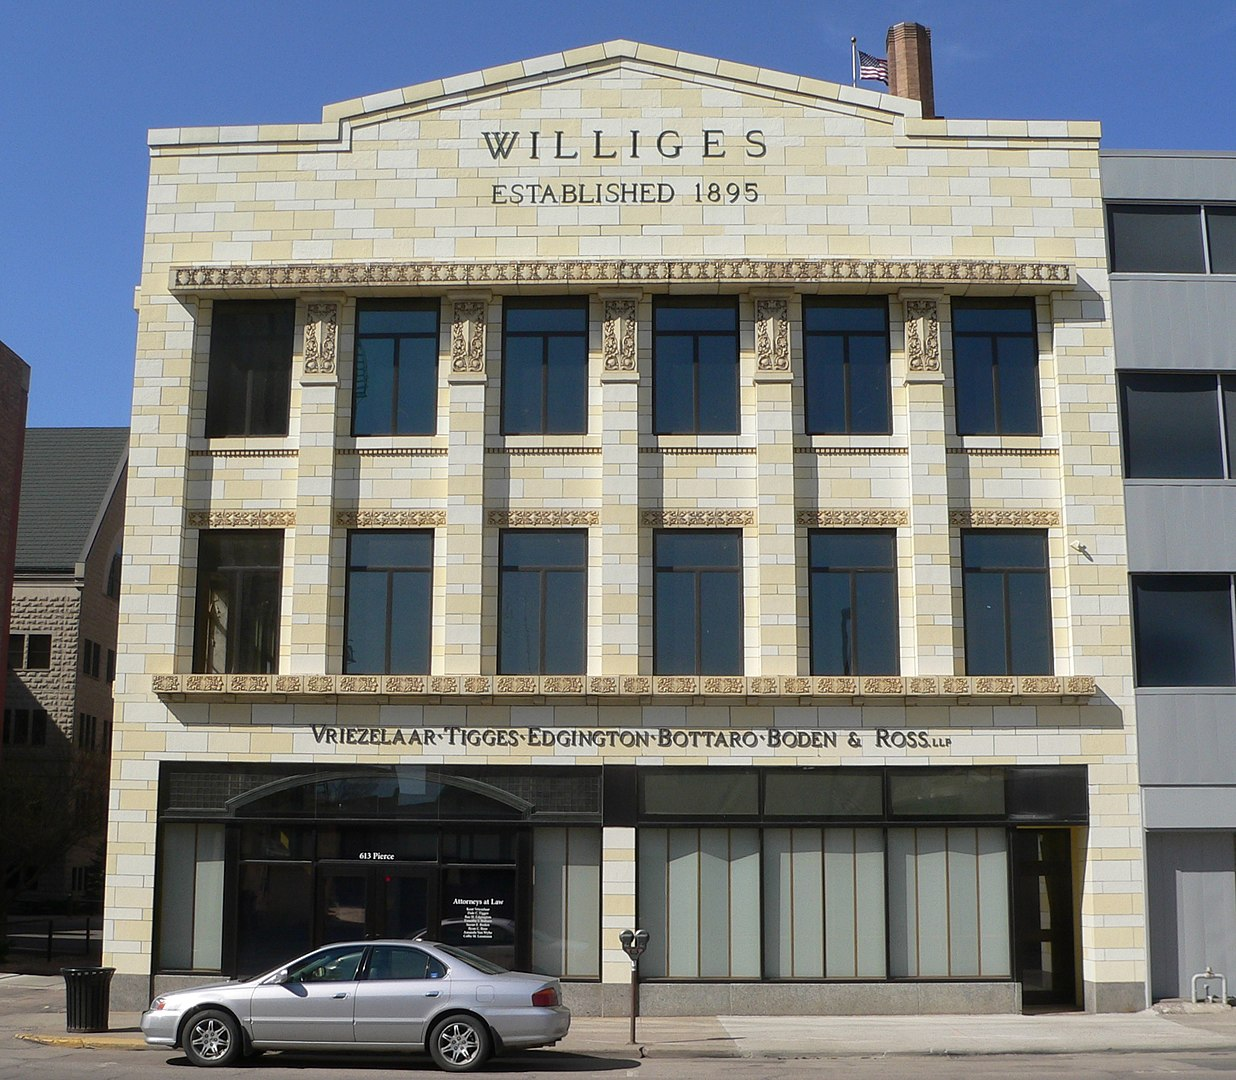 2012 Photo of the Williges Building in Sioux City -- Front View